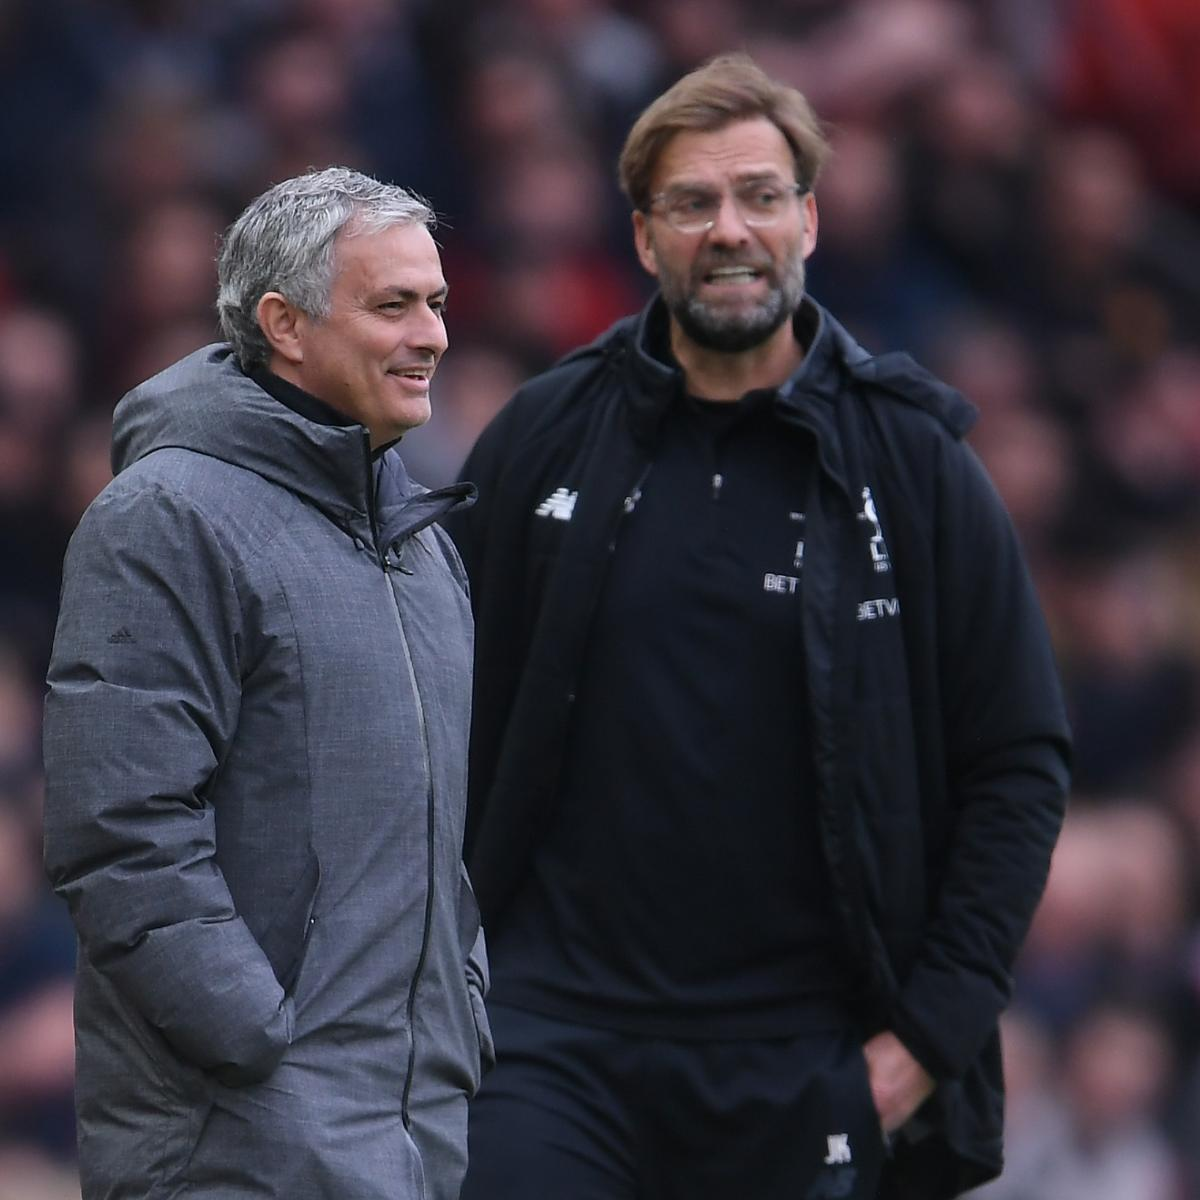 Premier League Fixtures: Live Stream, TV Schedule and Week 22 EPL Predictions